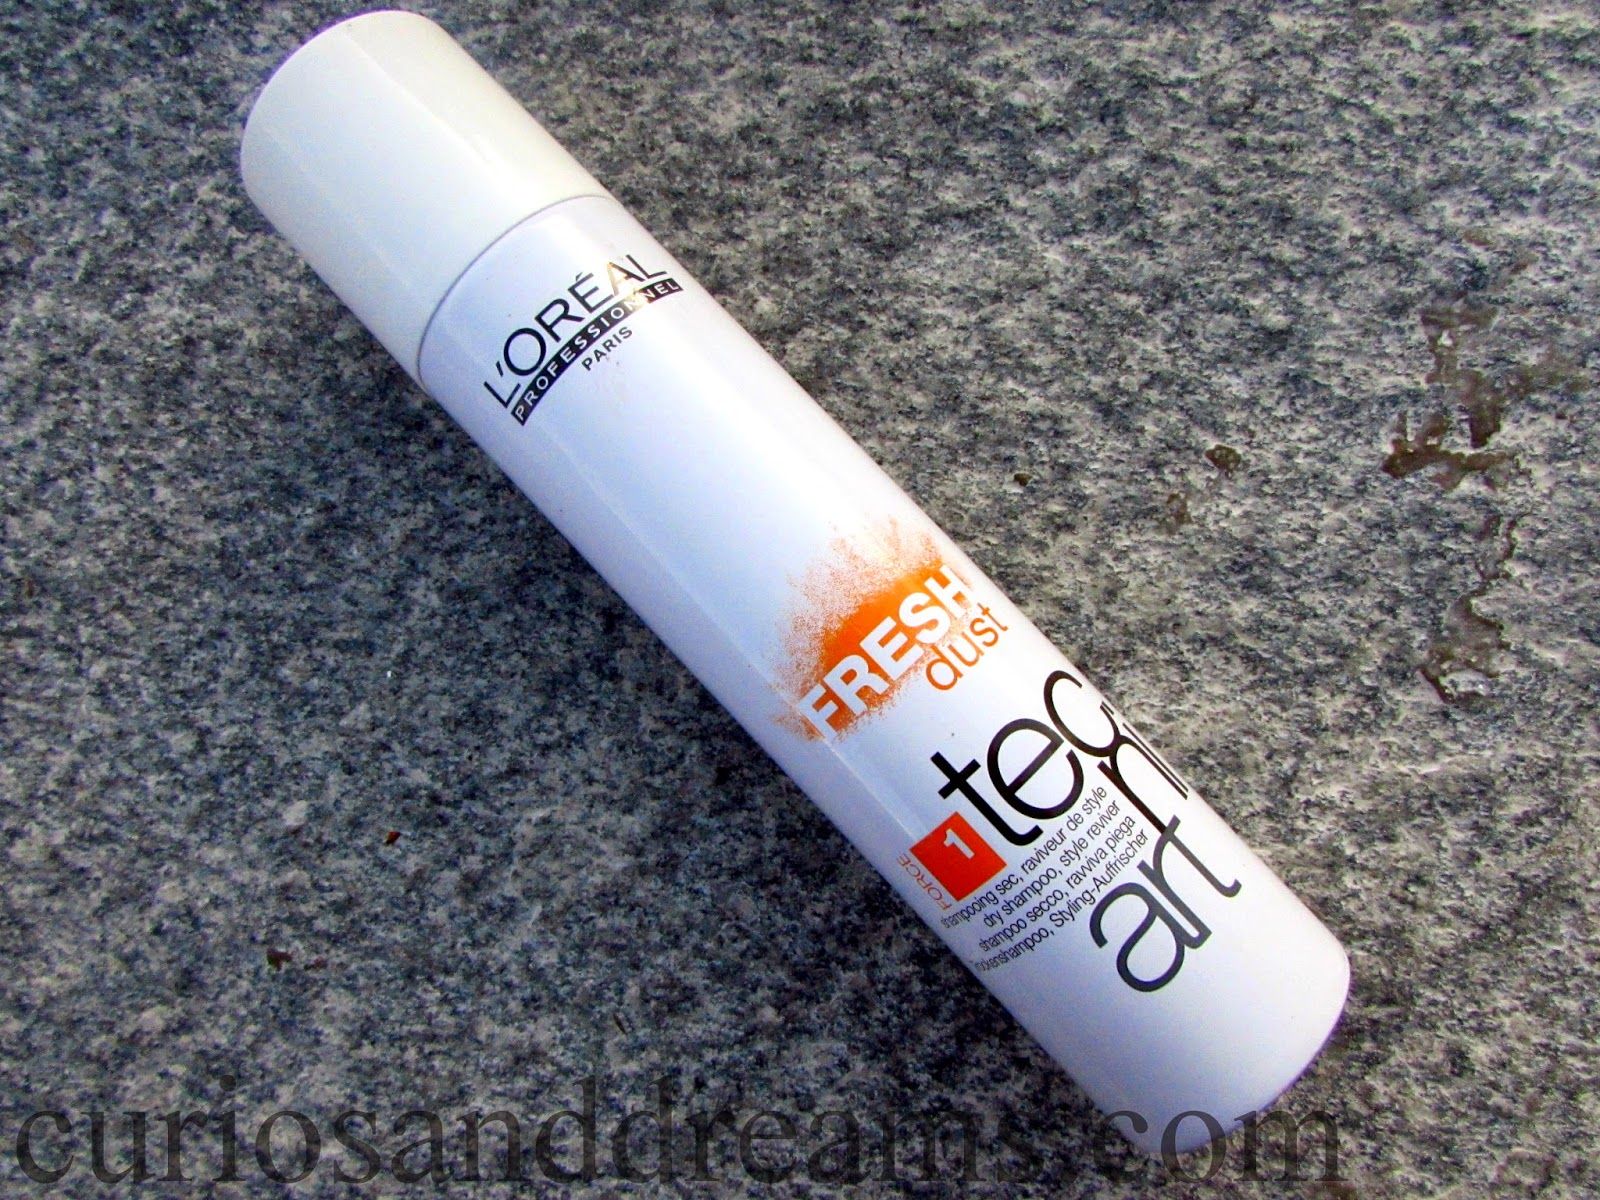 Loreal Fresh Dust Dry Shampoo Review, Loreal dry shampoo review